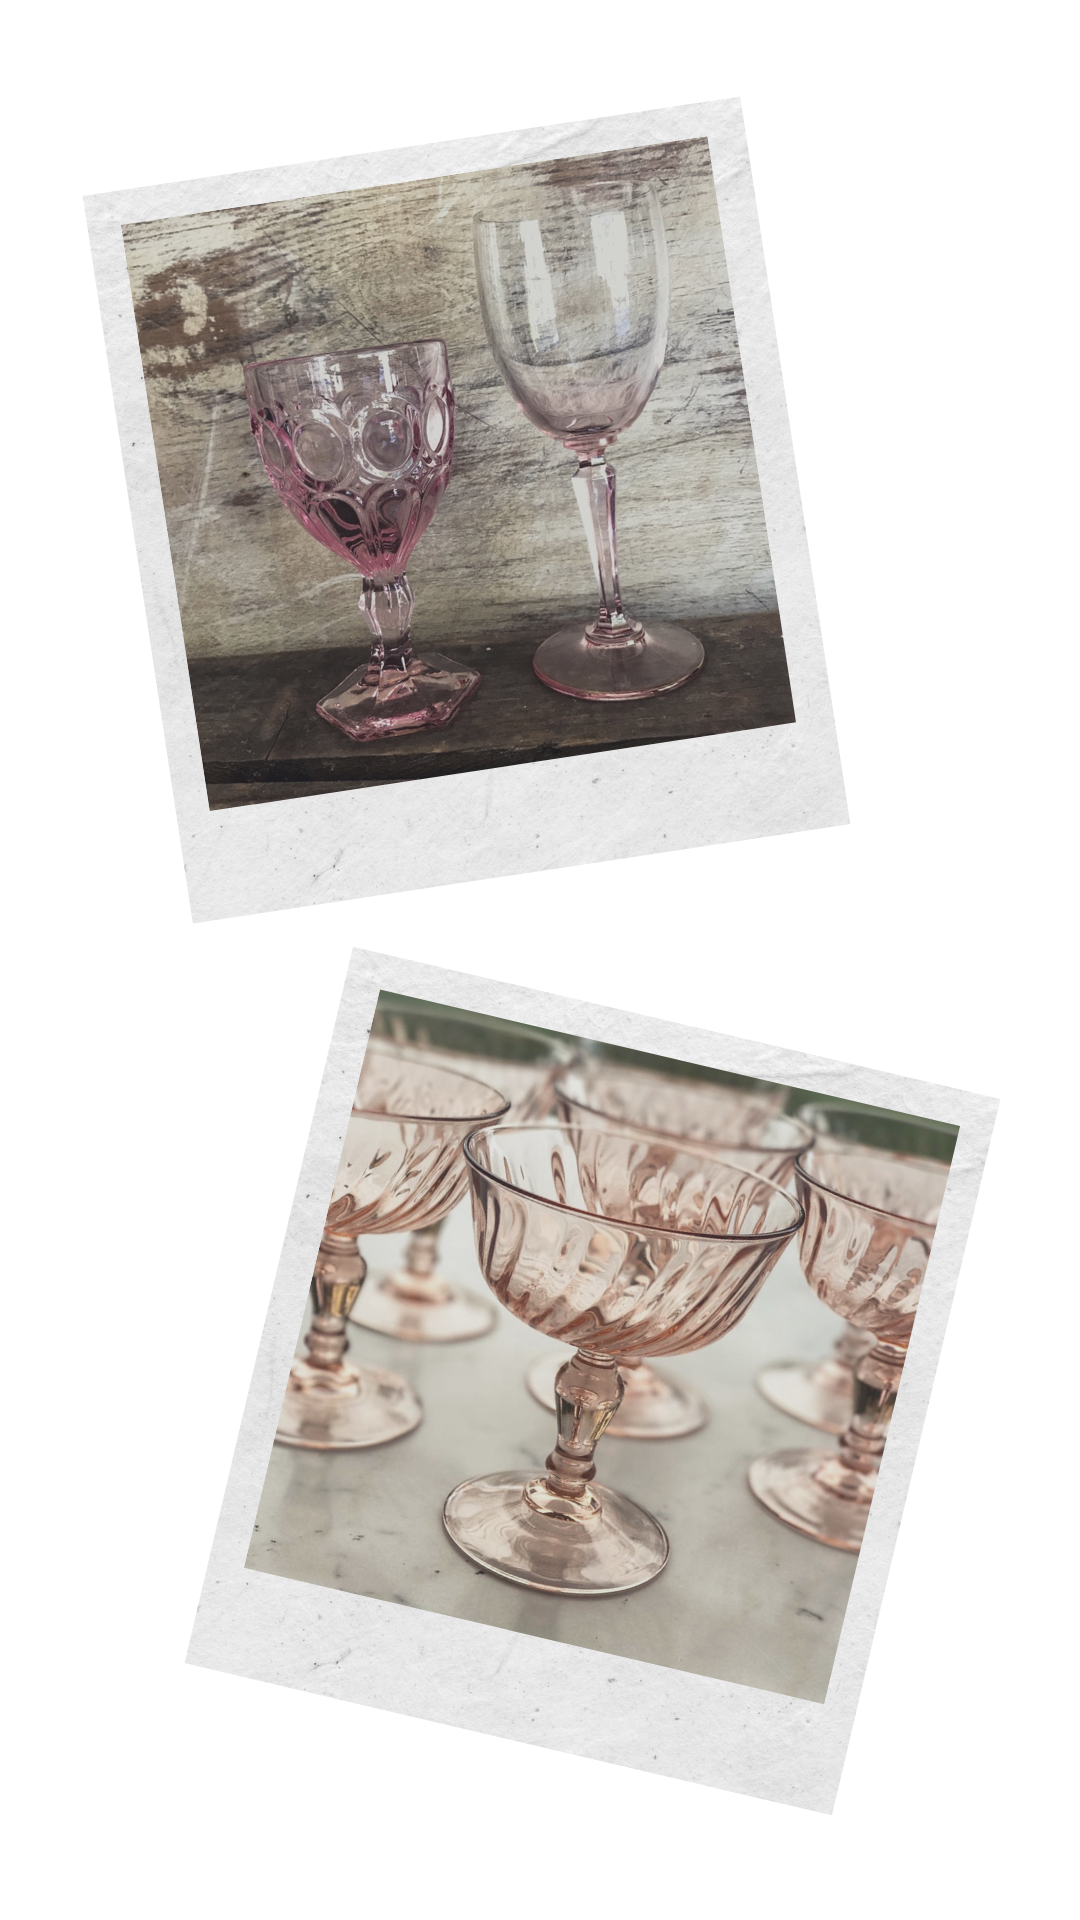 A collection of mismatched pink glass goblets for rent for weddings or parties in the Murrieta area.